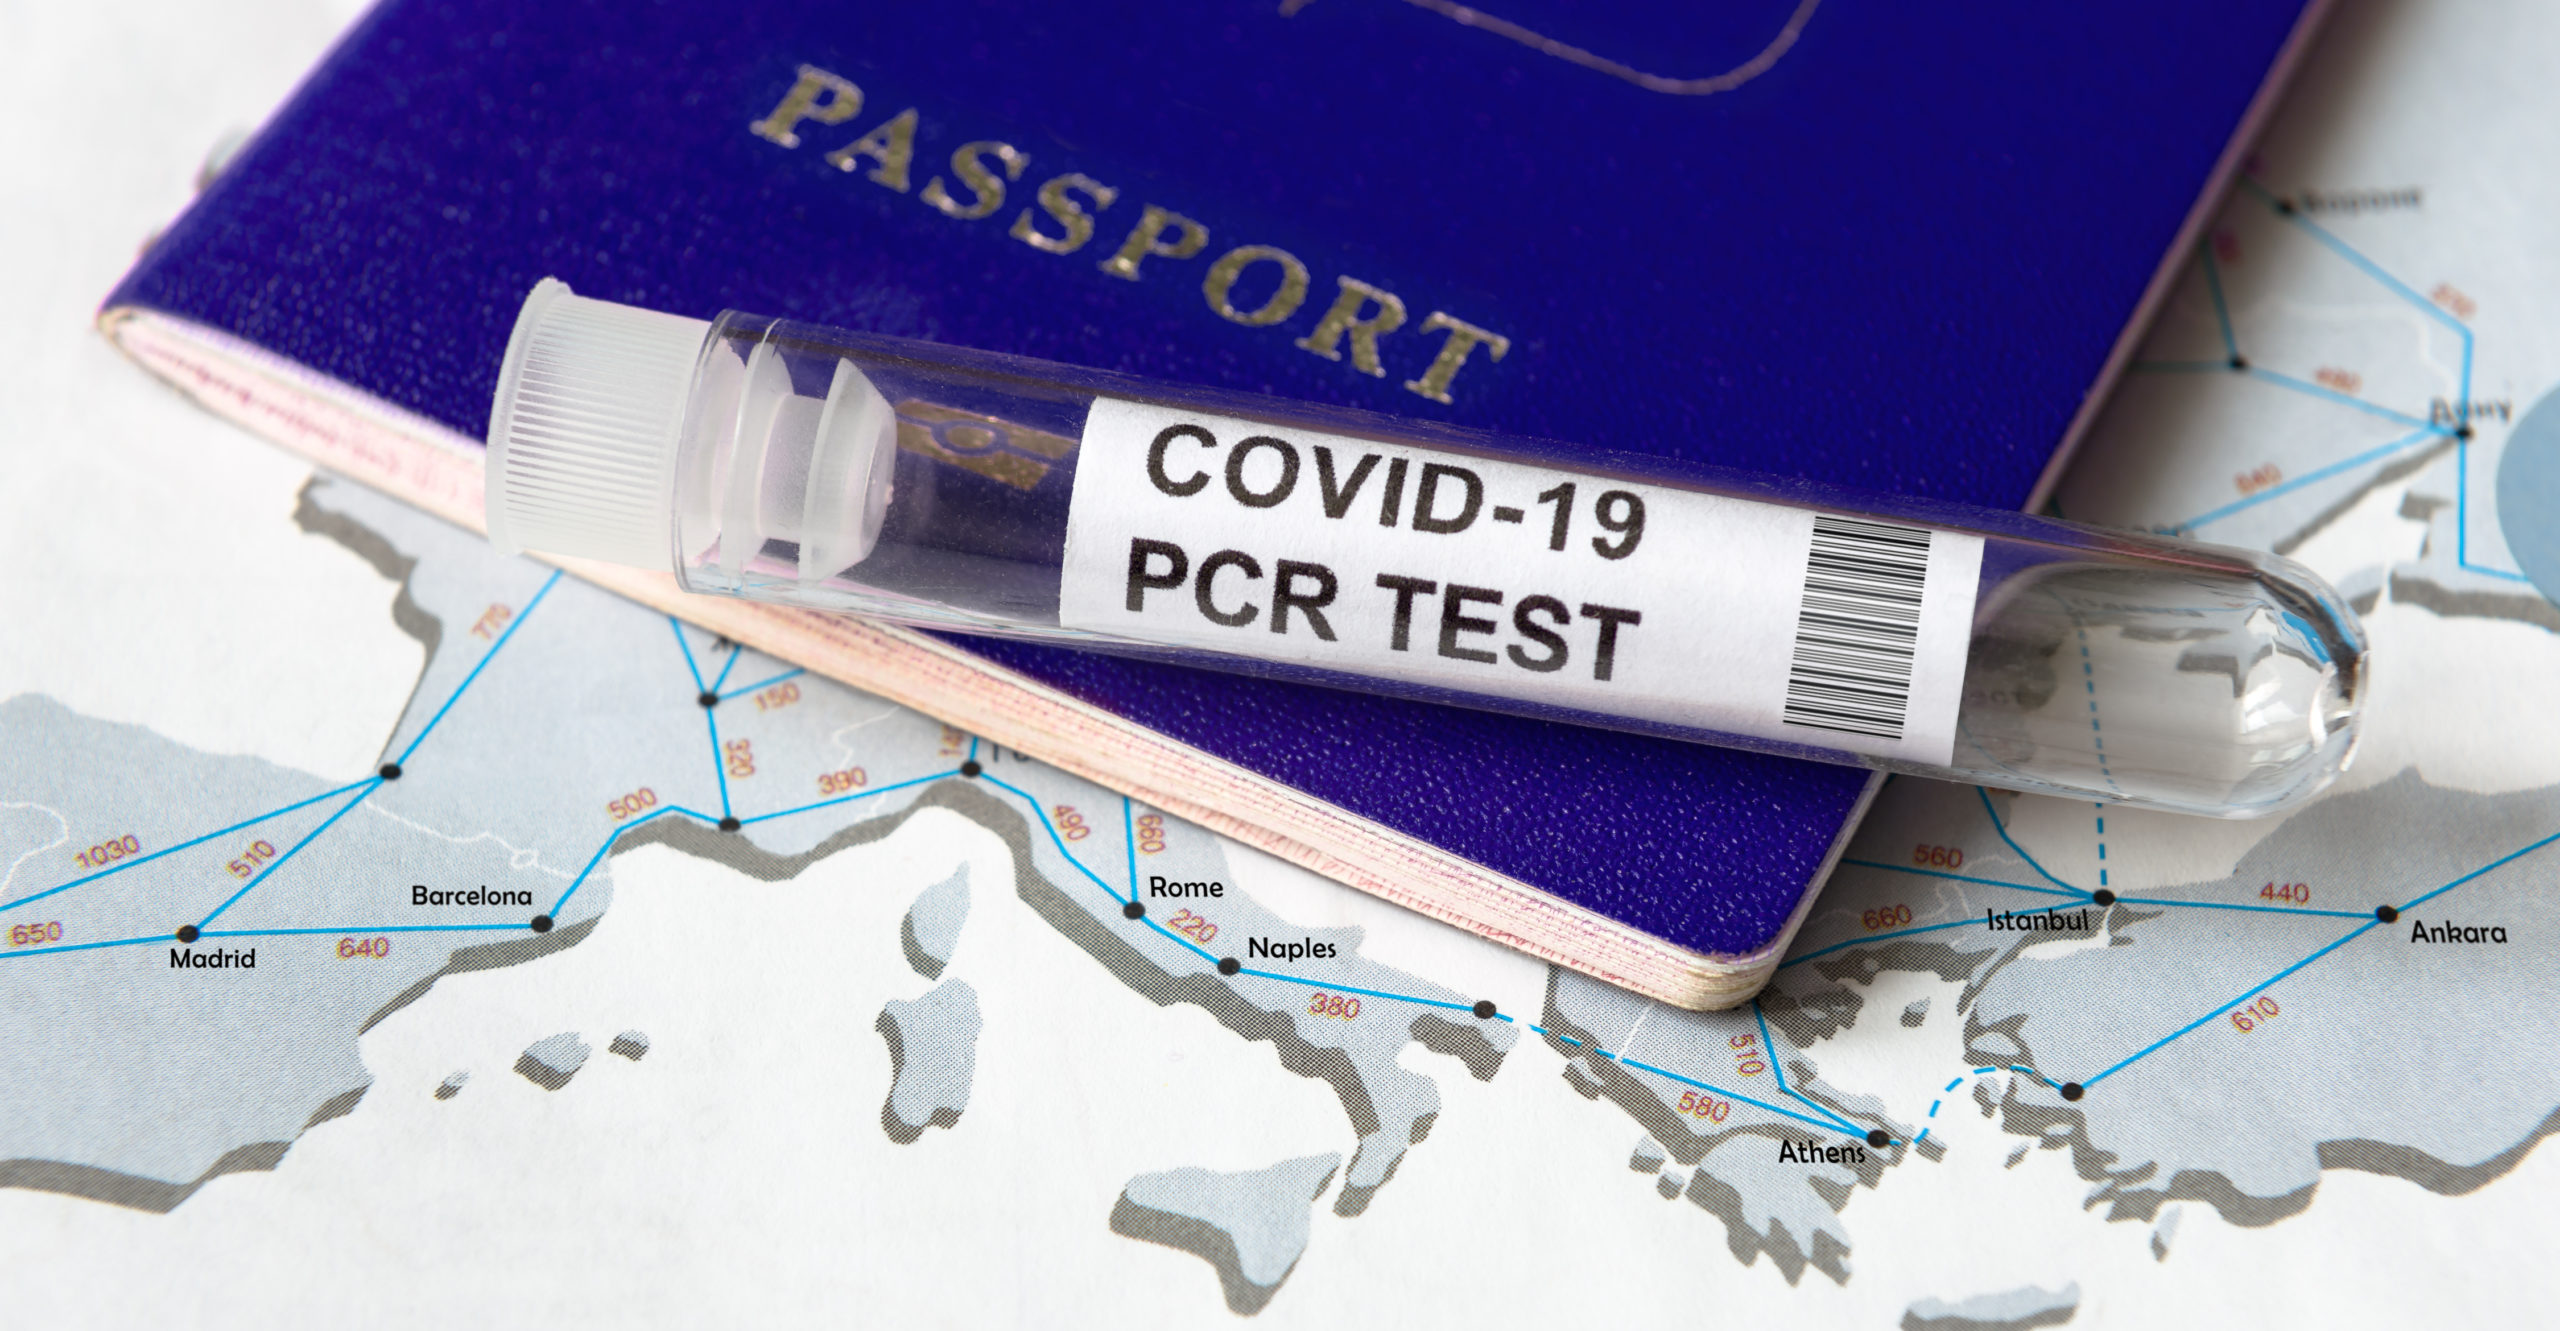 COVID-19, travel and test concept, tube for coronavirus PCR testing and tourist passport on Europe map. Coronavirus diagnostics in airport due to restrictions and lockdown. Tourism hit by corona virus